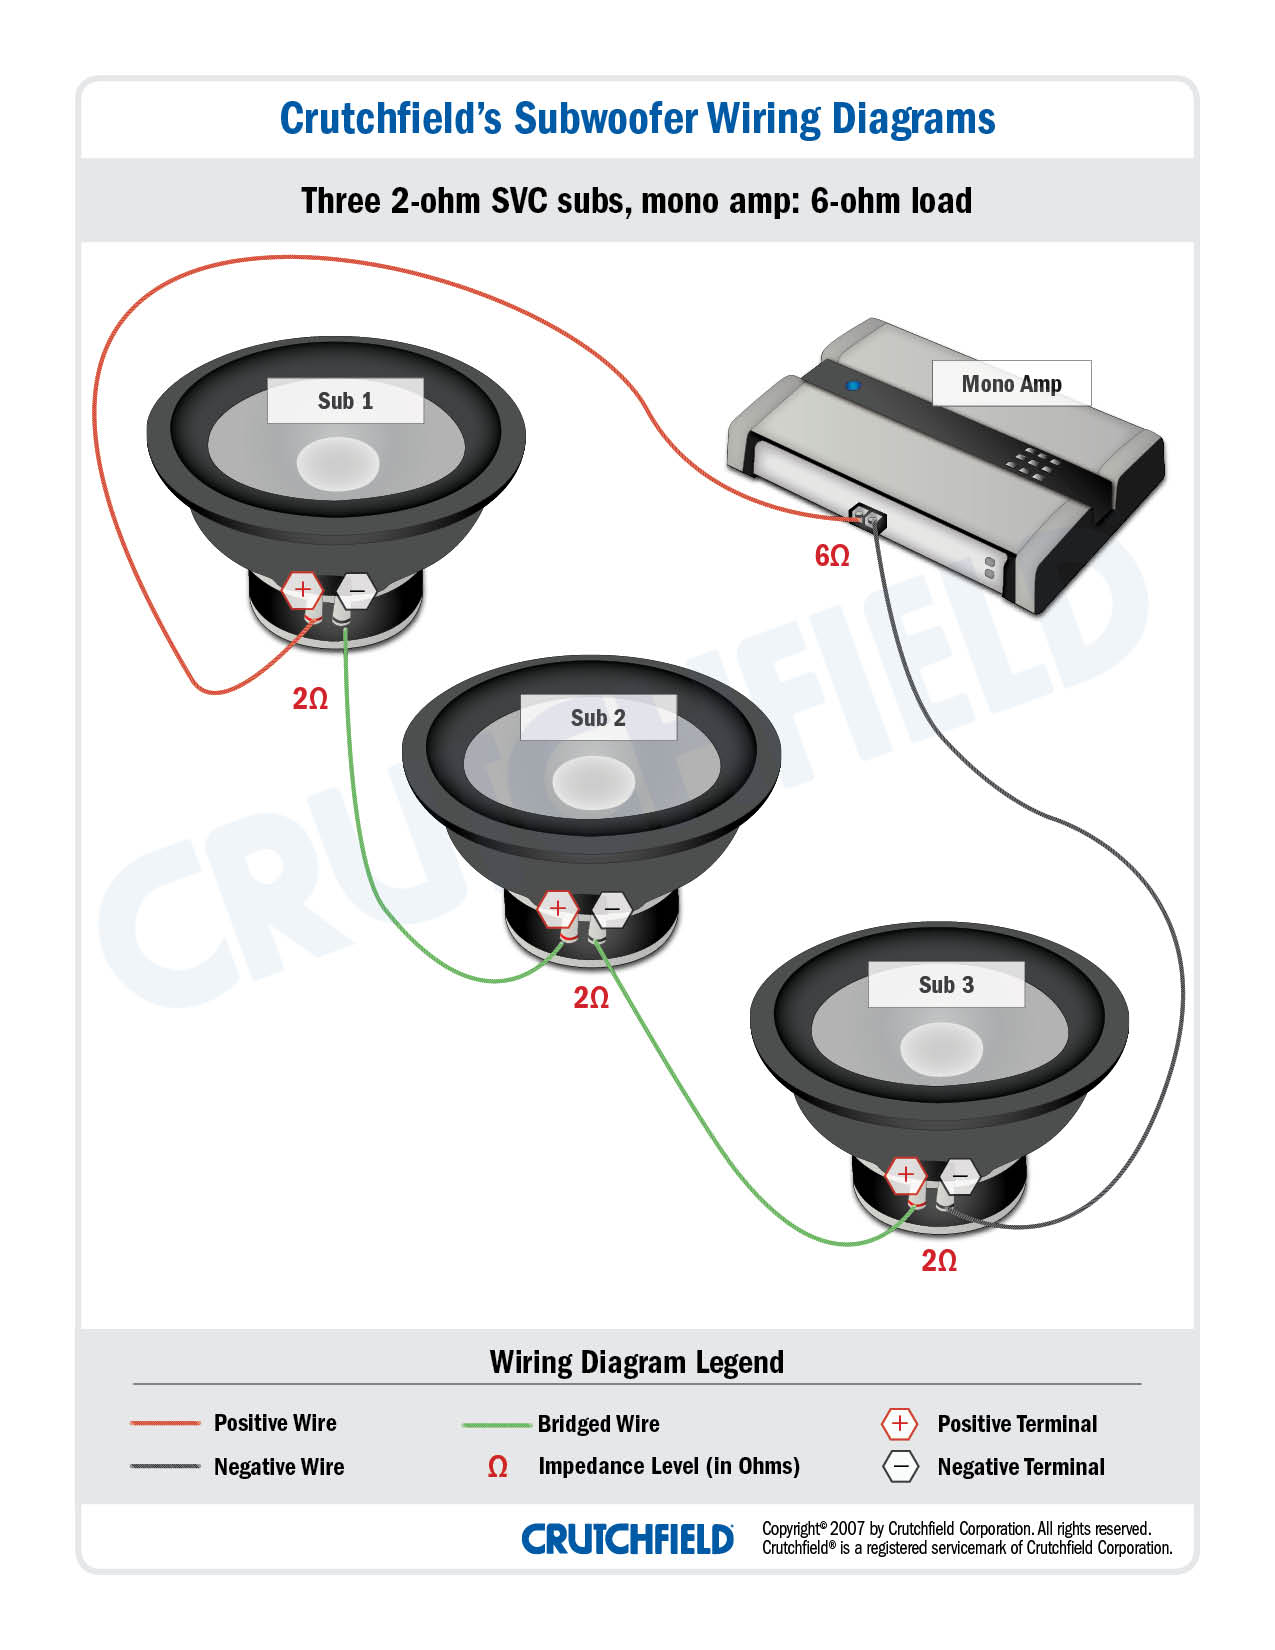 Subwoofer Wiring Diagrams — How to Wire Your Subs on crutchfield sub diagram, crutchfield wiring gauge, crutchfield wiring guide, crutchfield subwoofer wiring, crutchfield wiring capacitor,